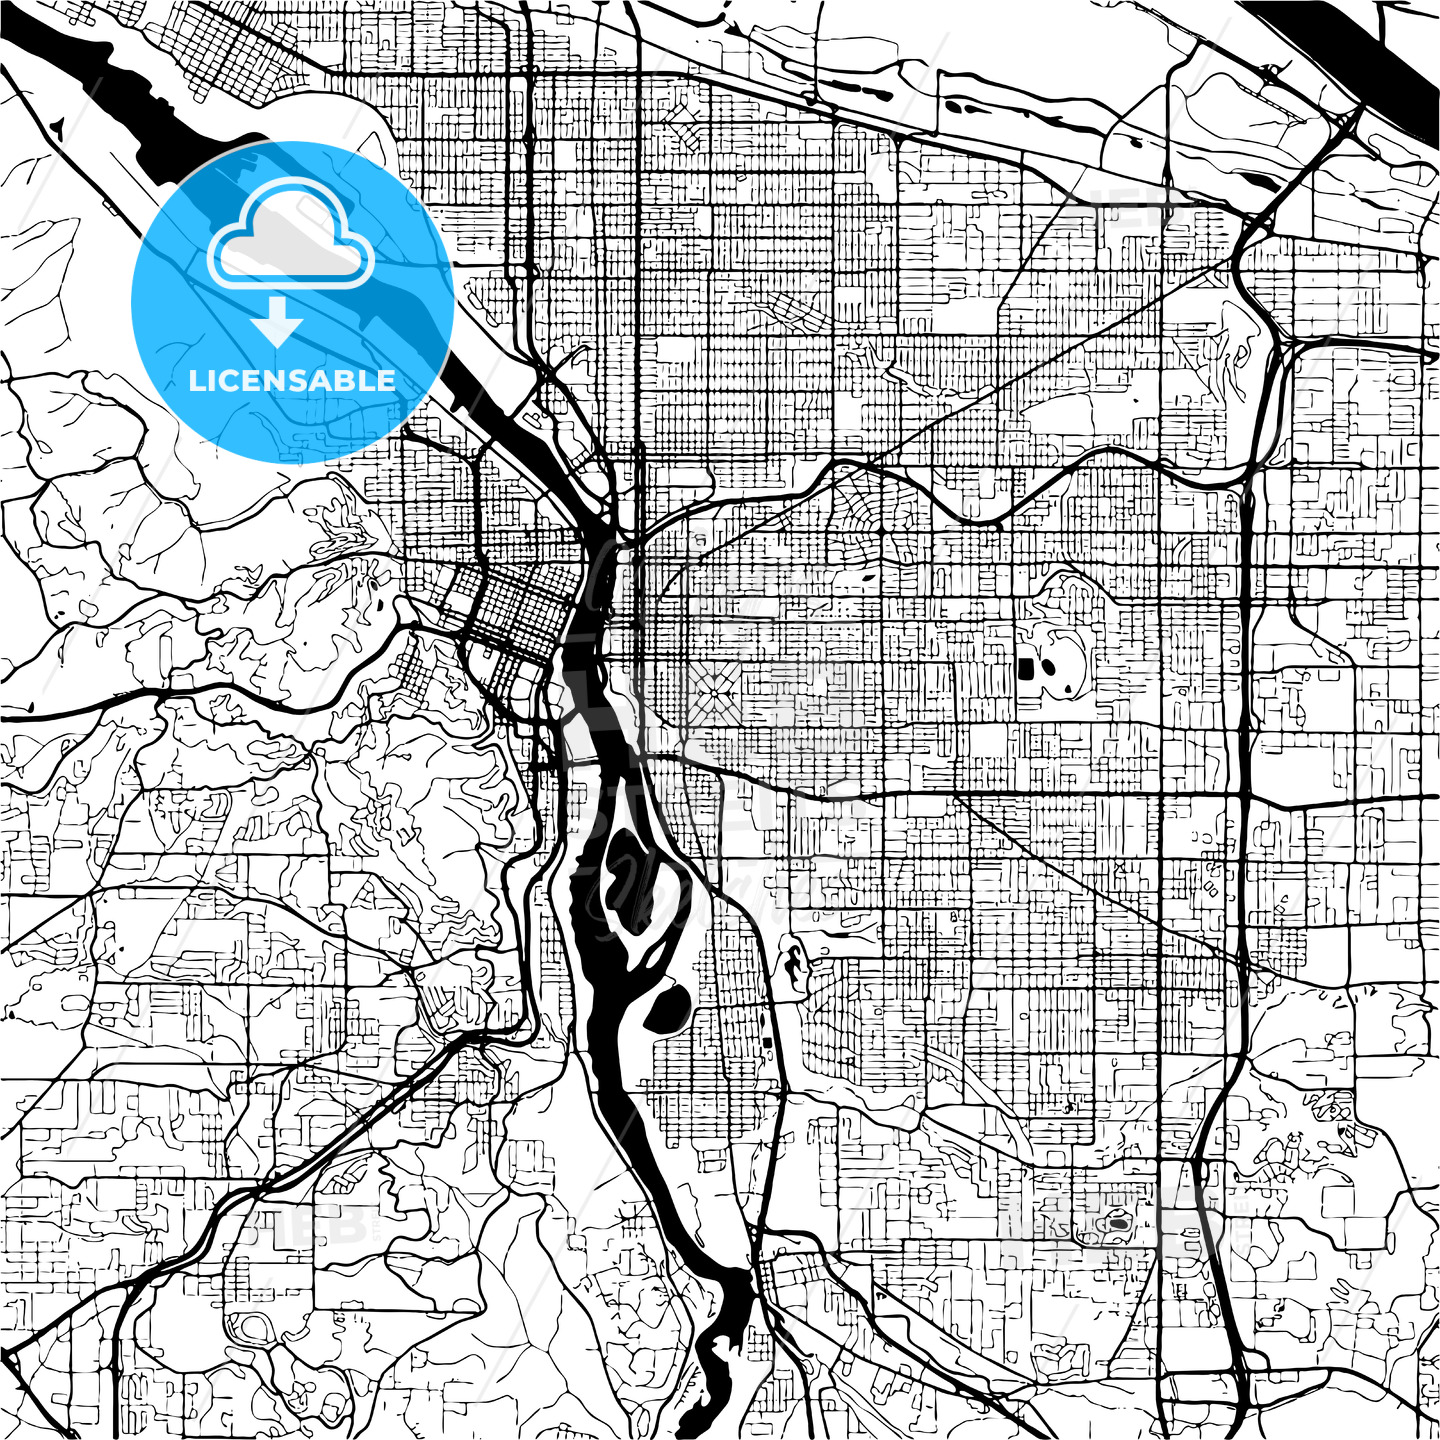 Vancouver Canada, Monochrome Map Artprint - HEBSTREITS